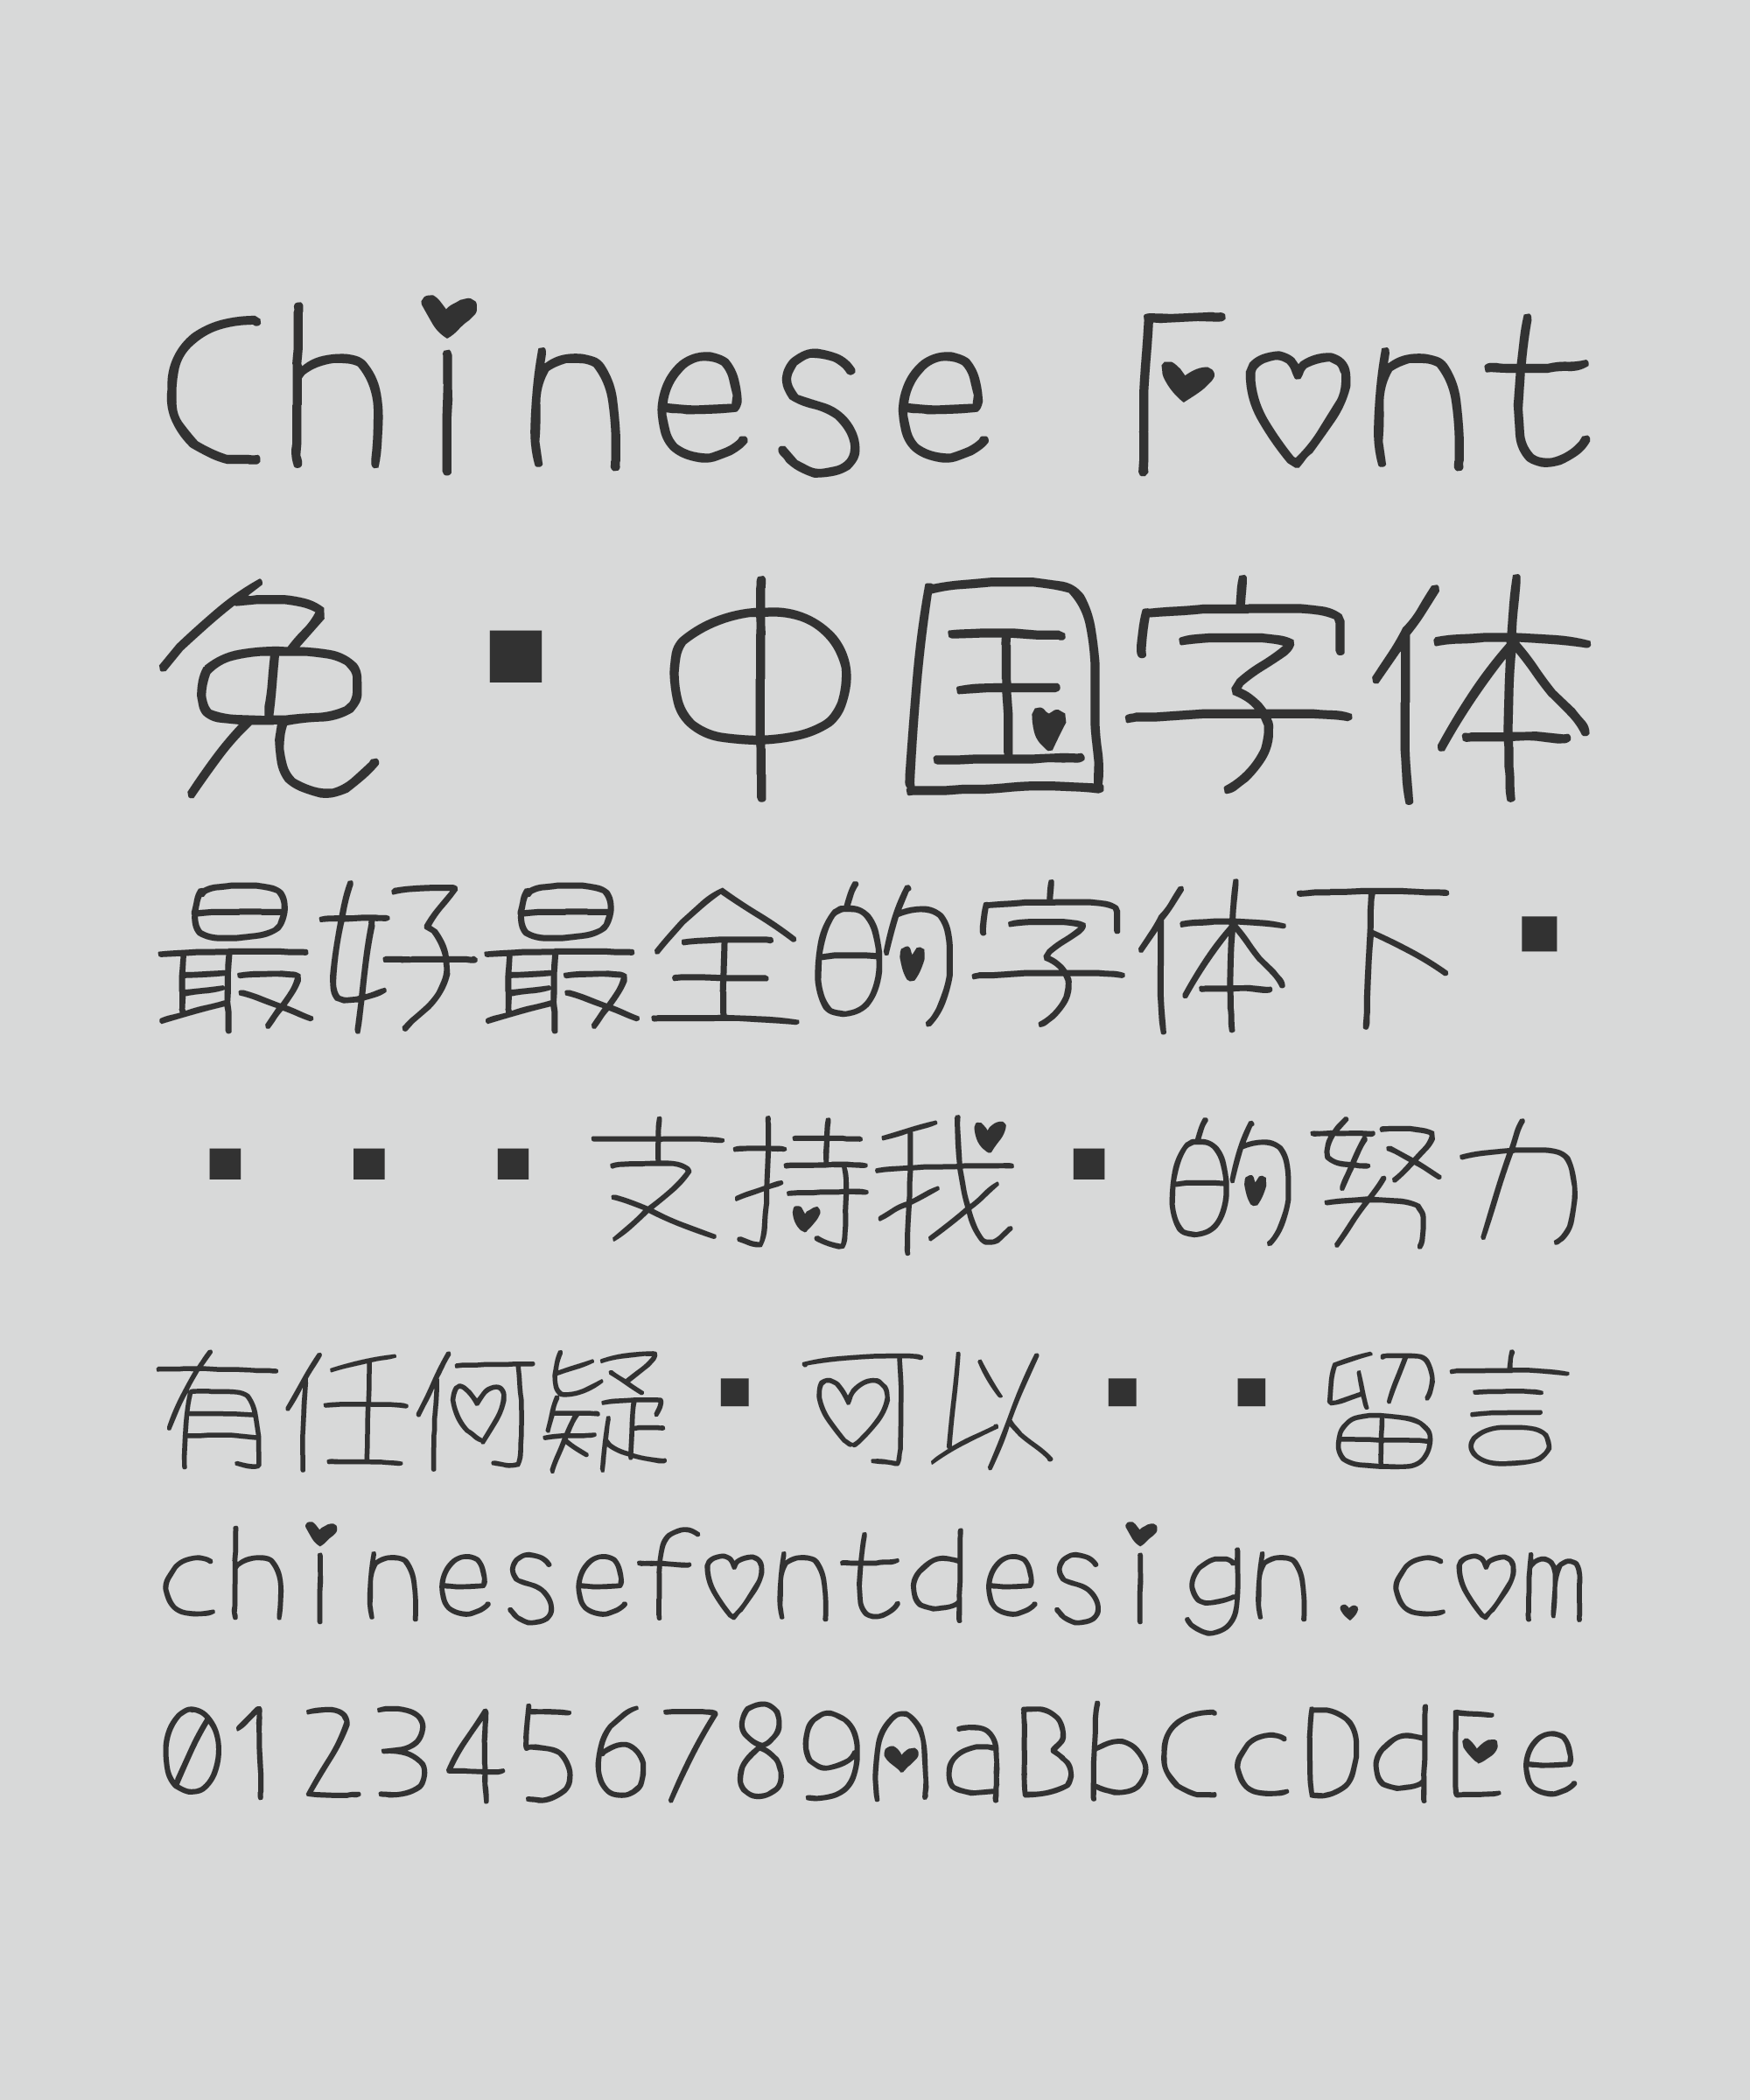 S2G Love (Incomplete font) Handwriting Chinese Font -Simplified Chinese Fonts